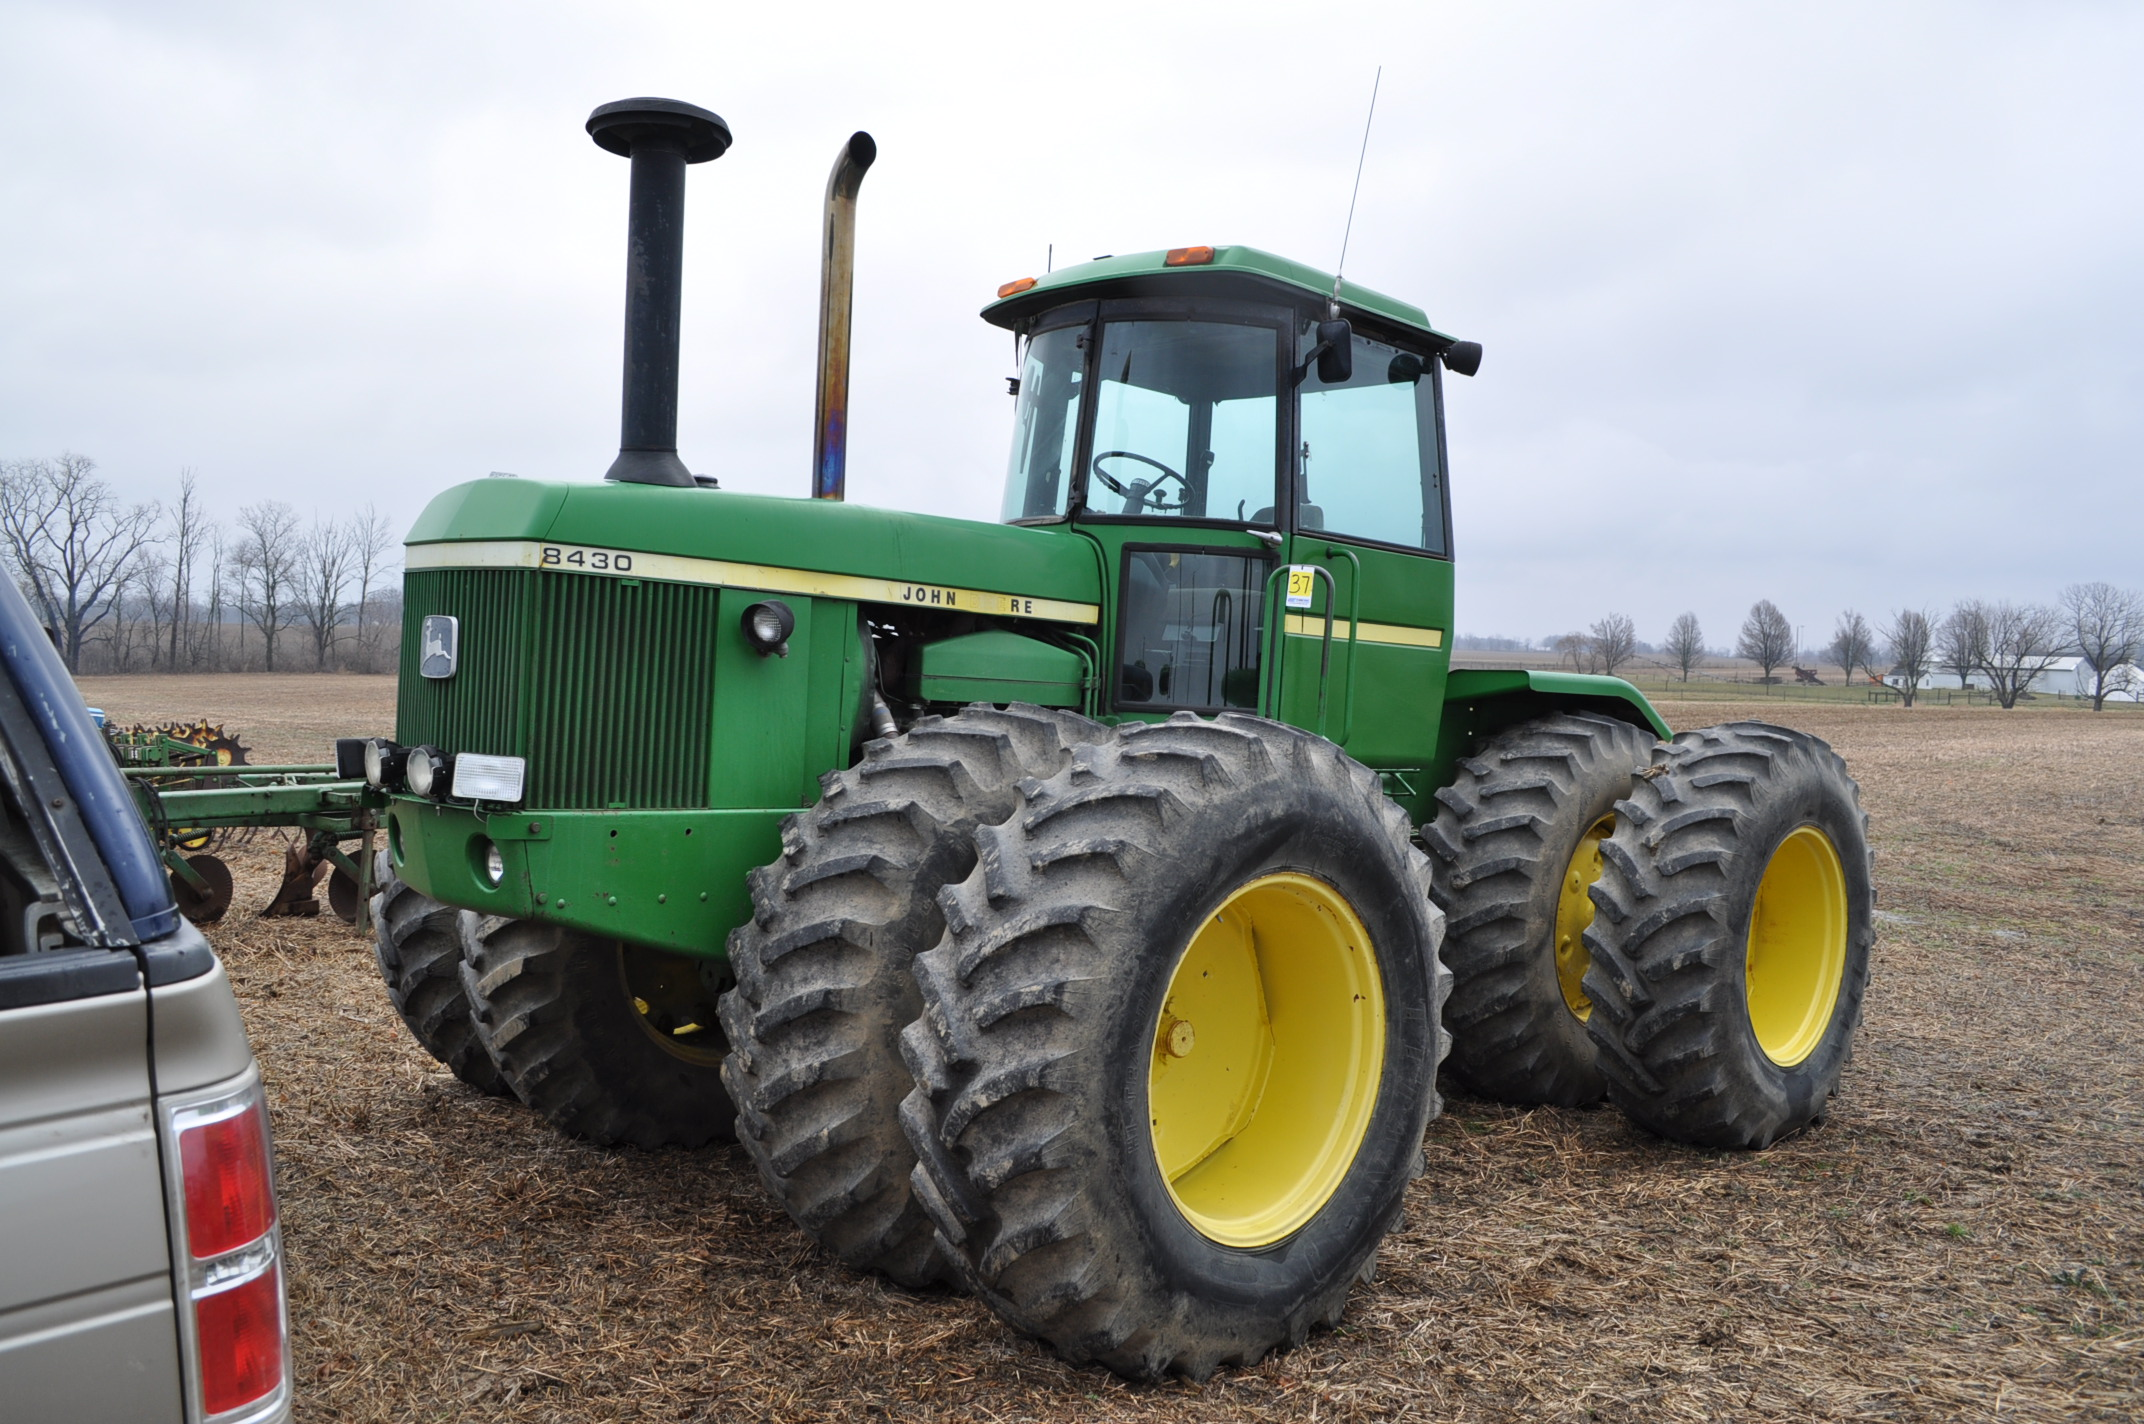 John Deere 8430 tractor, 4WD, diesel, 20.8-34 duals, CHA, Quad range, 3 hyd remotes, 1000 pto, 3 pt,